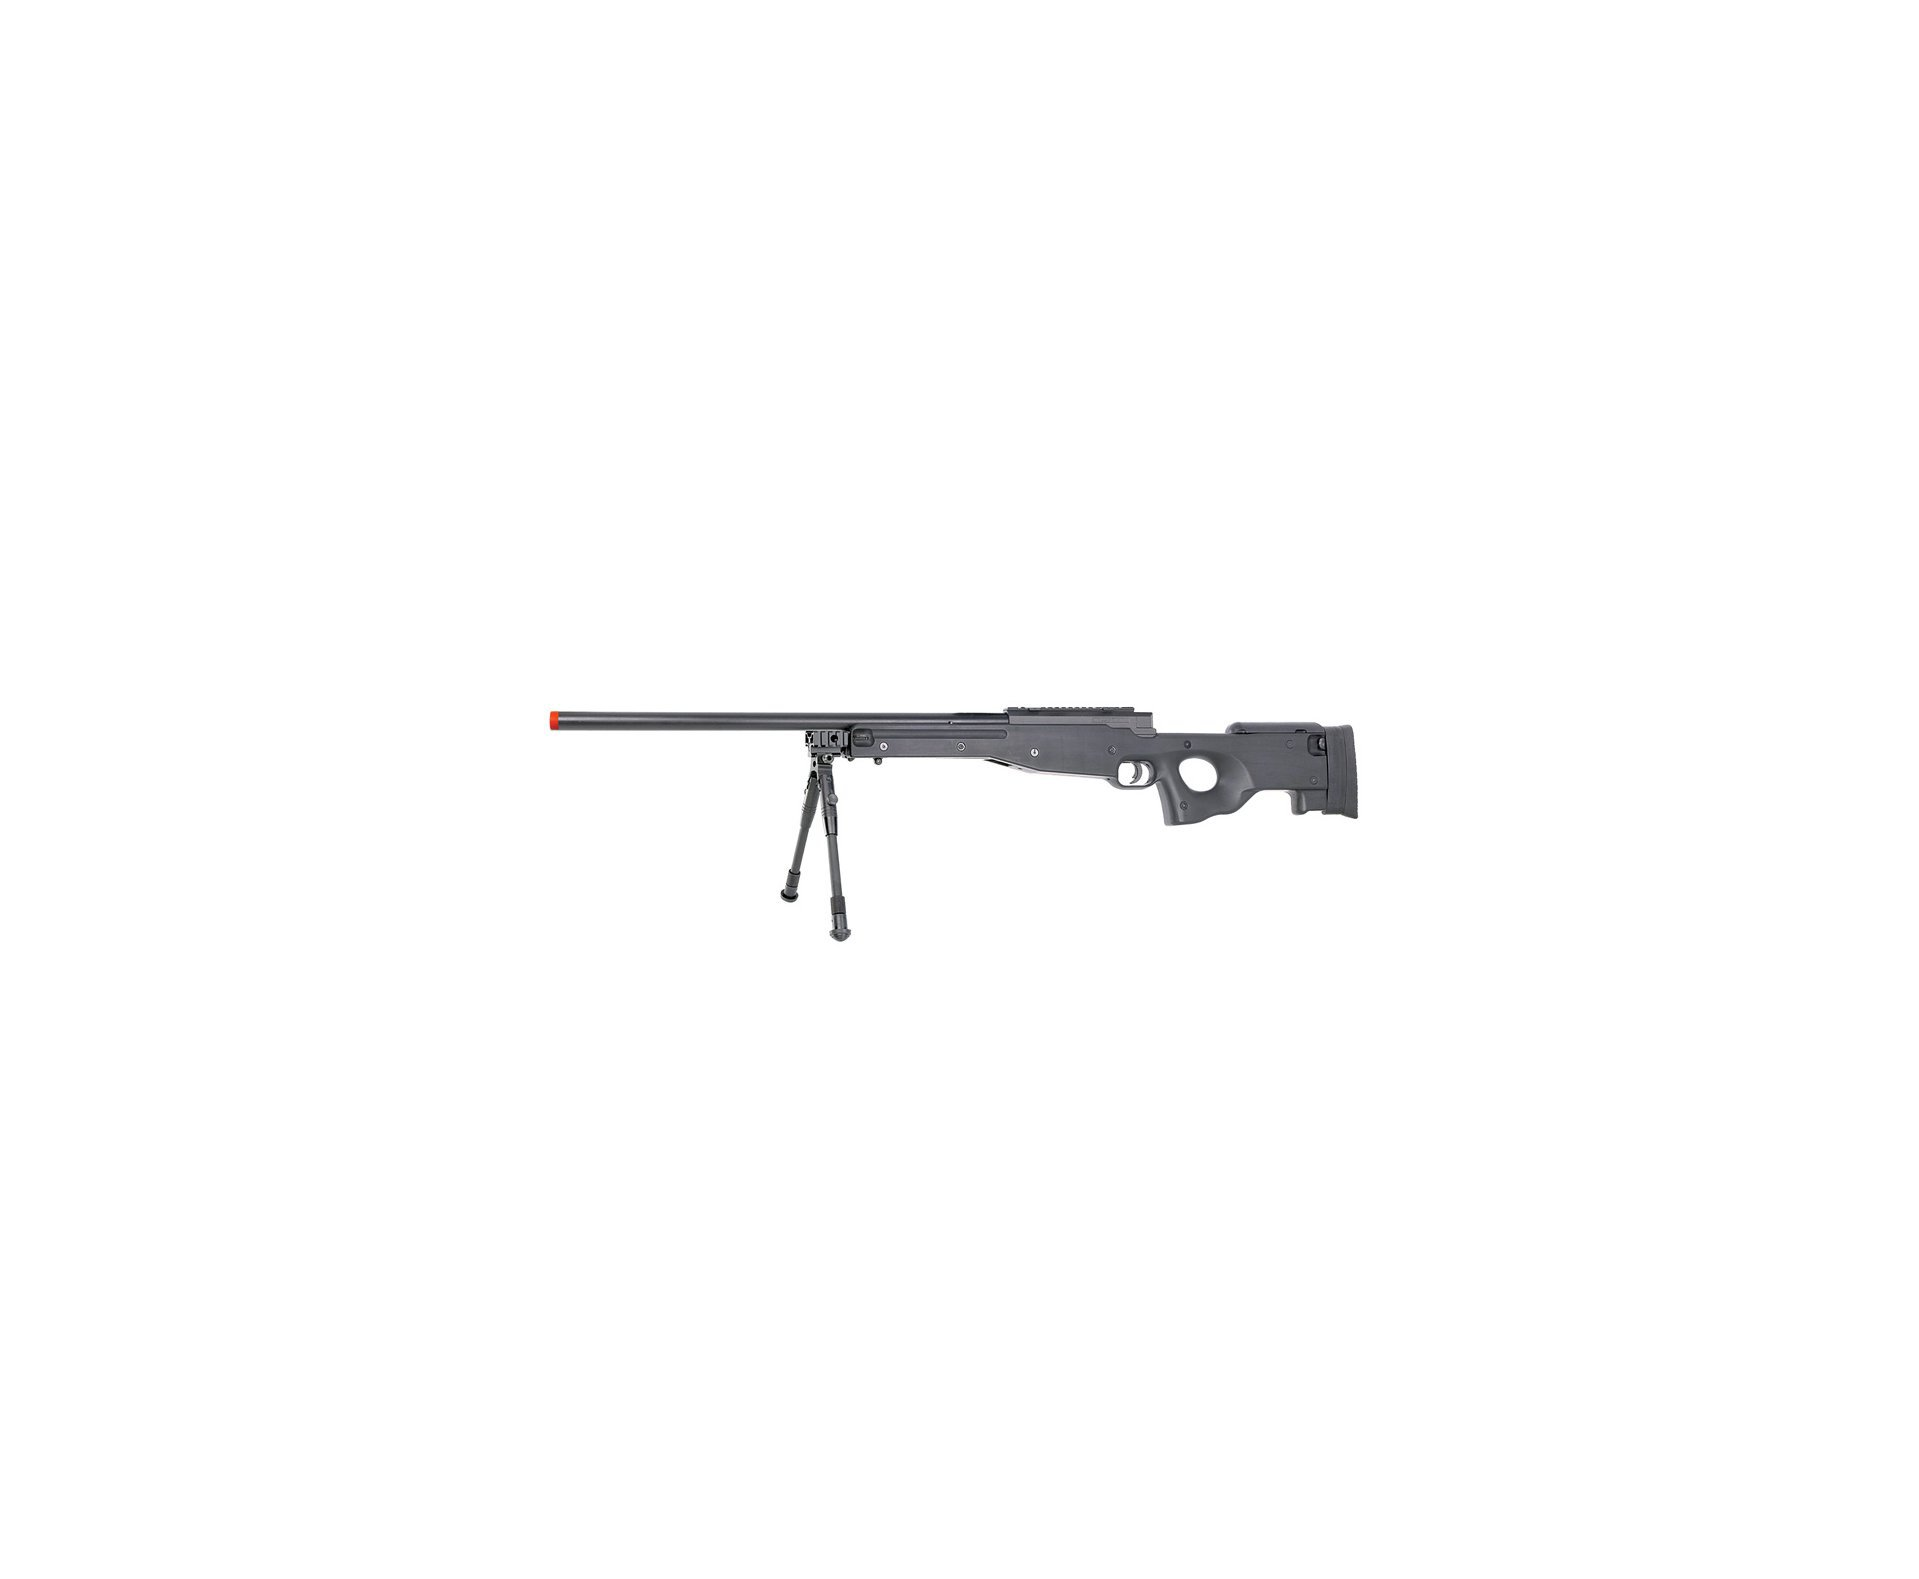 Rifle De Airsoft Sniper Mauser Sr Spring - Cal 6,0 Mm - Cybergun